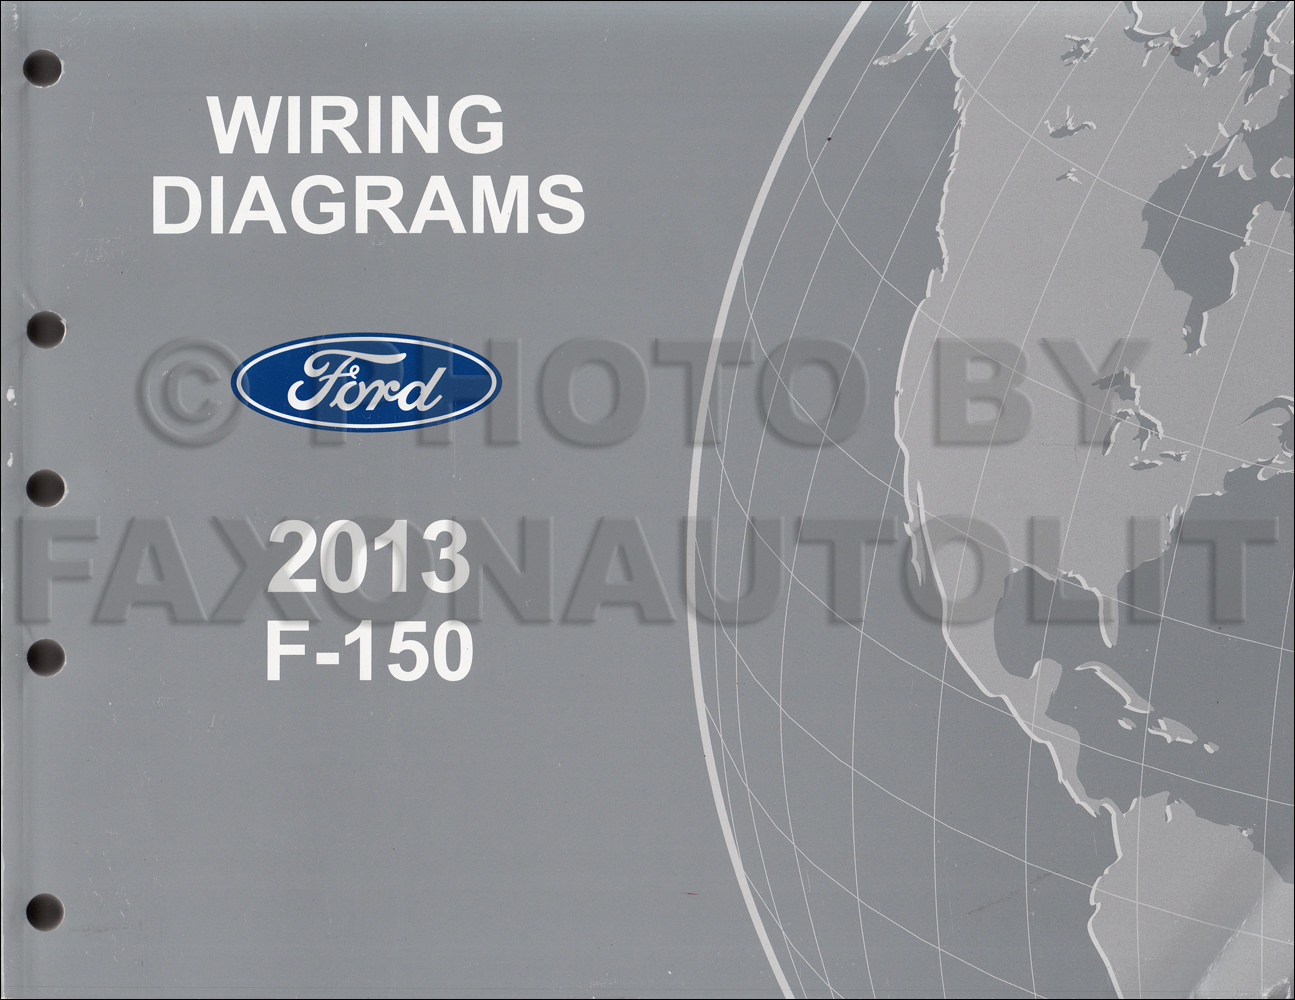 2013 Ford F150 Electrical Wiring Diagrams Truck Original New Hexbug Tony Hawk Circuit Boards Powered Board Set Eugene Toy Hobby F 150 Diagram Manual